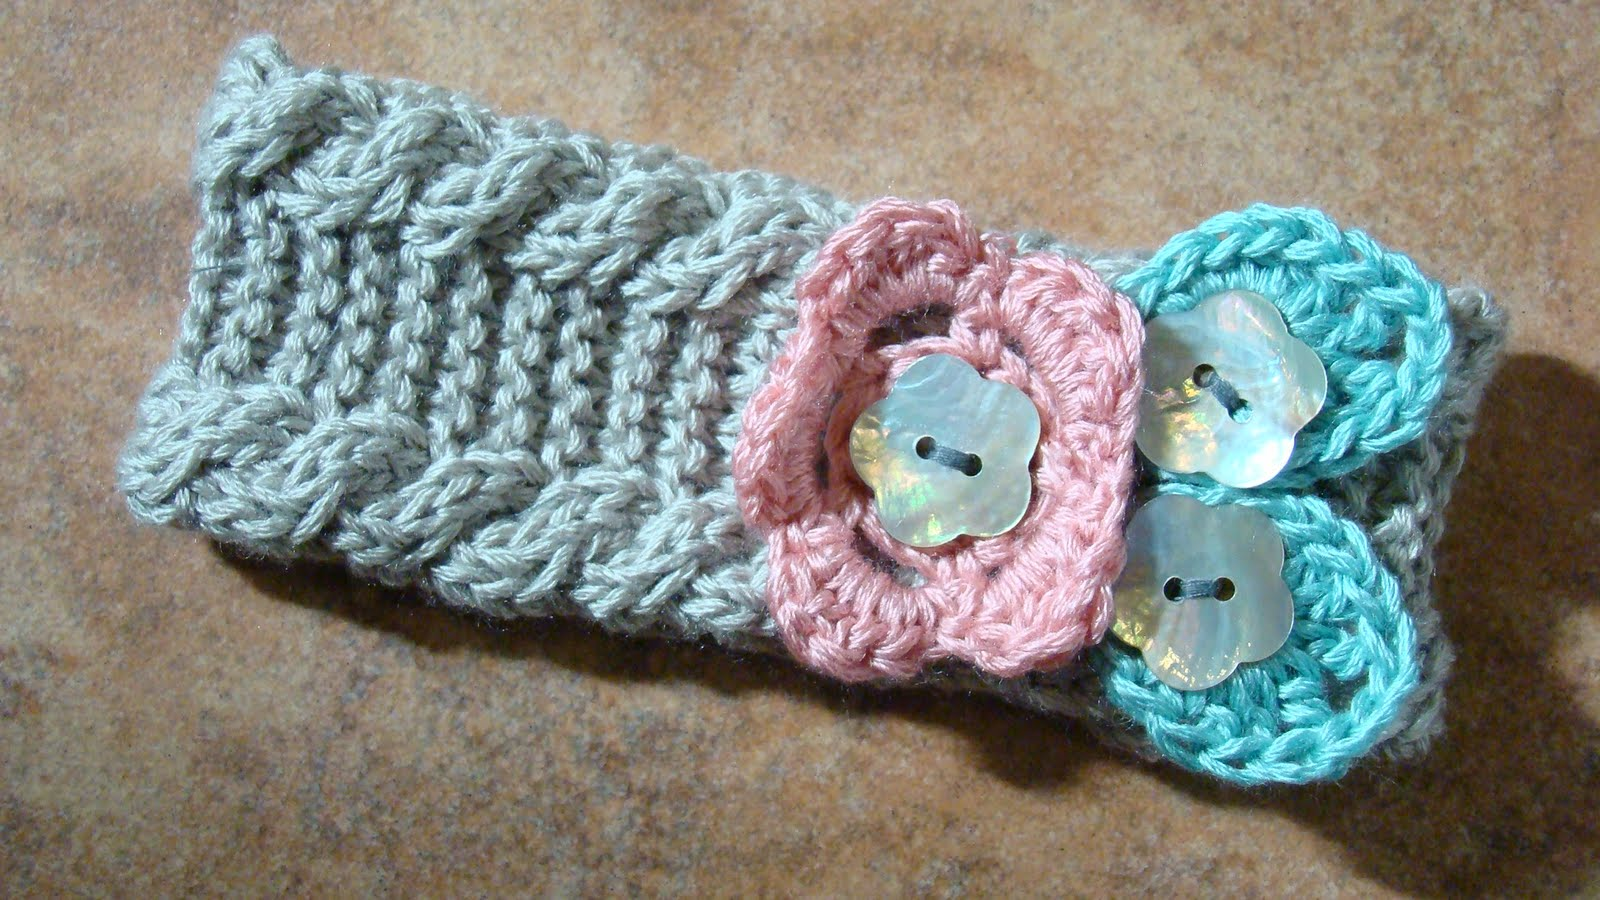 Crafts By Starlight: Knit Infant Winter Headband